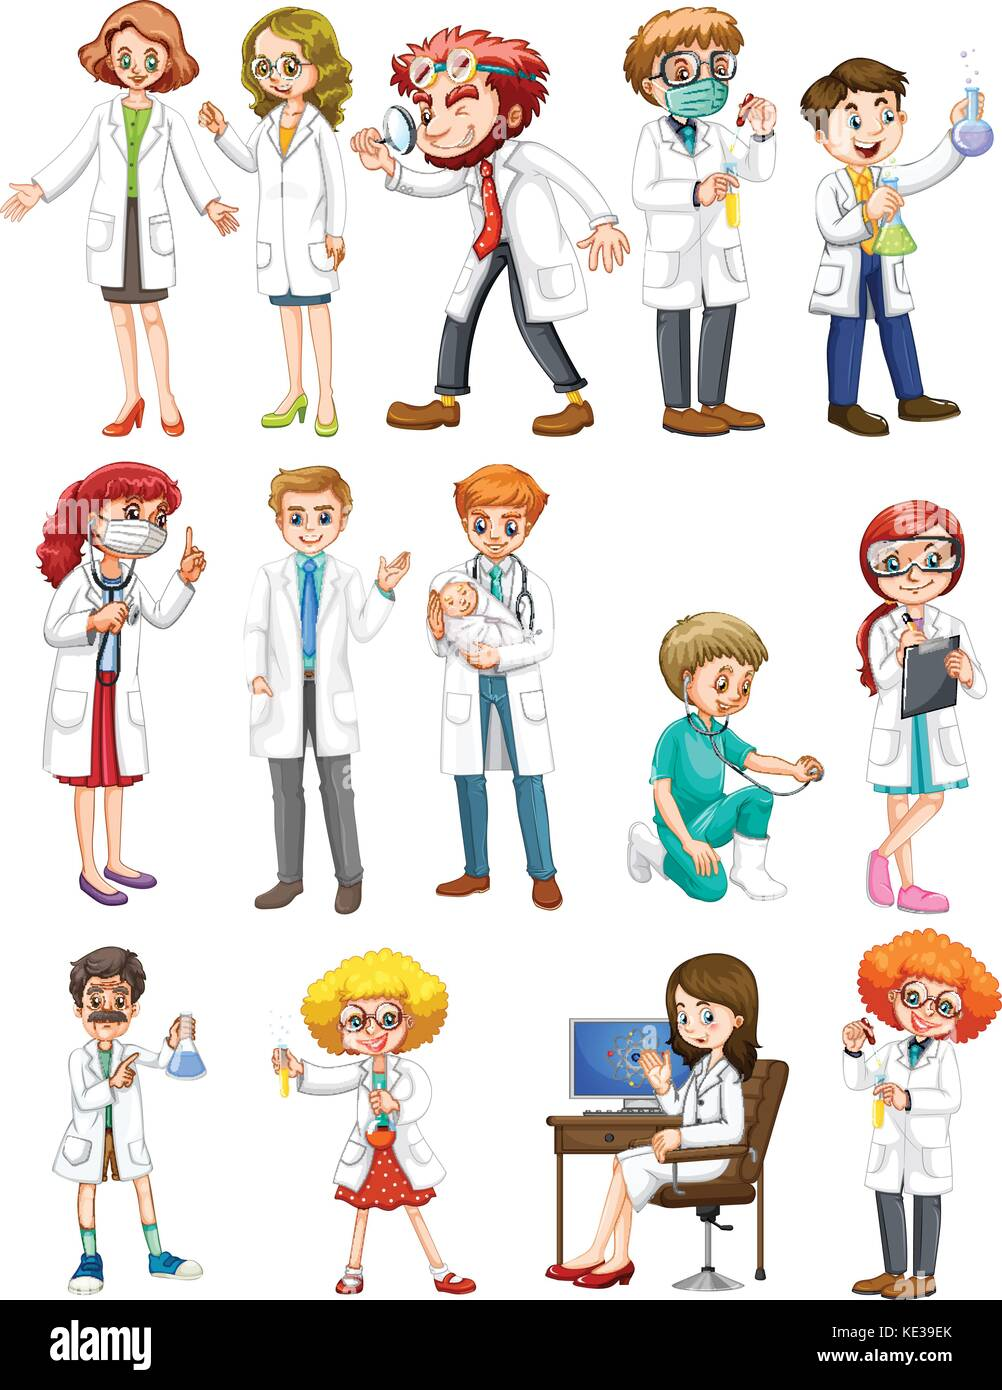 Male and female scientists in white gown illustration - Stock Image